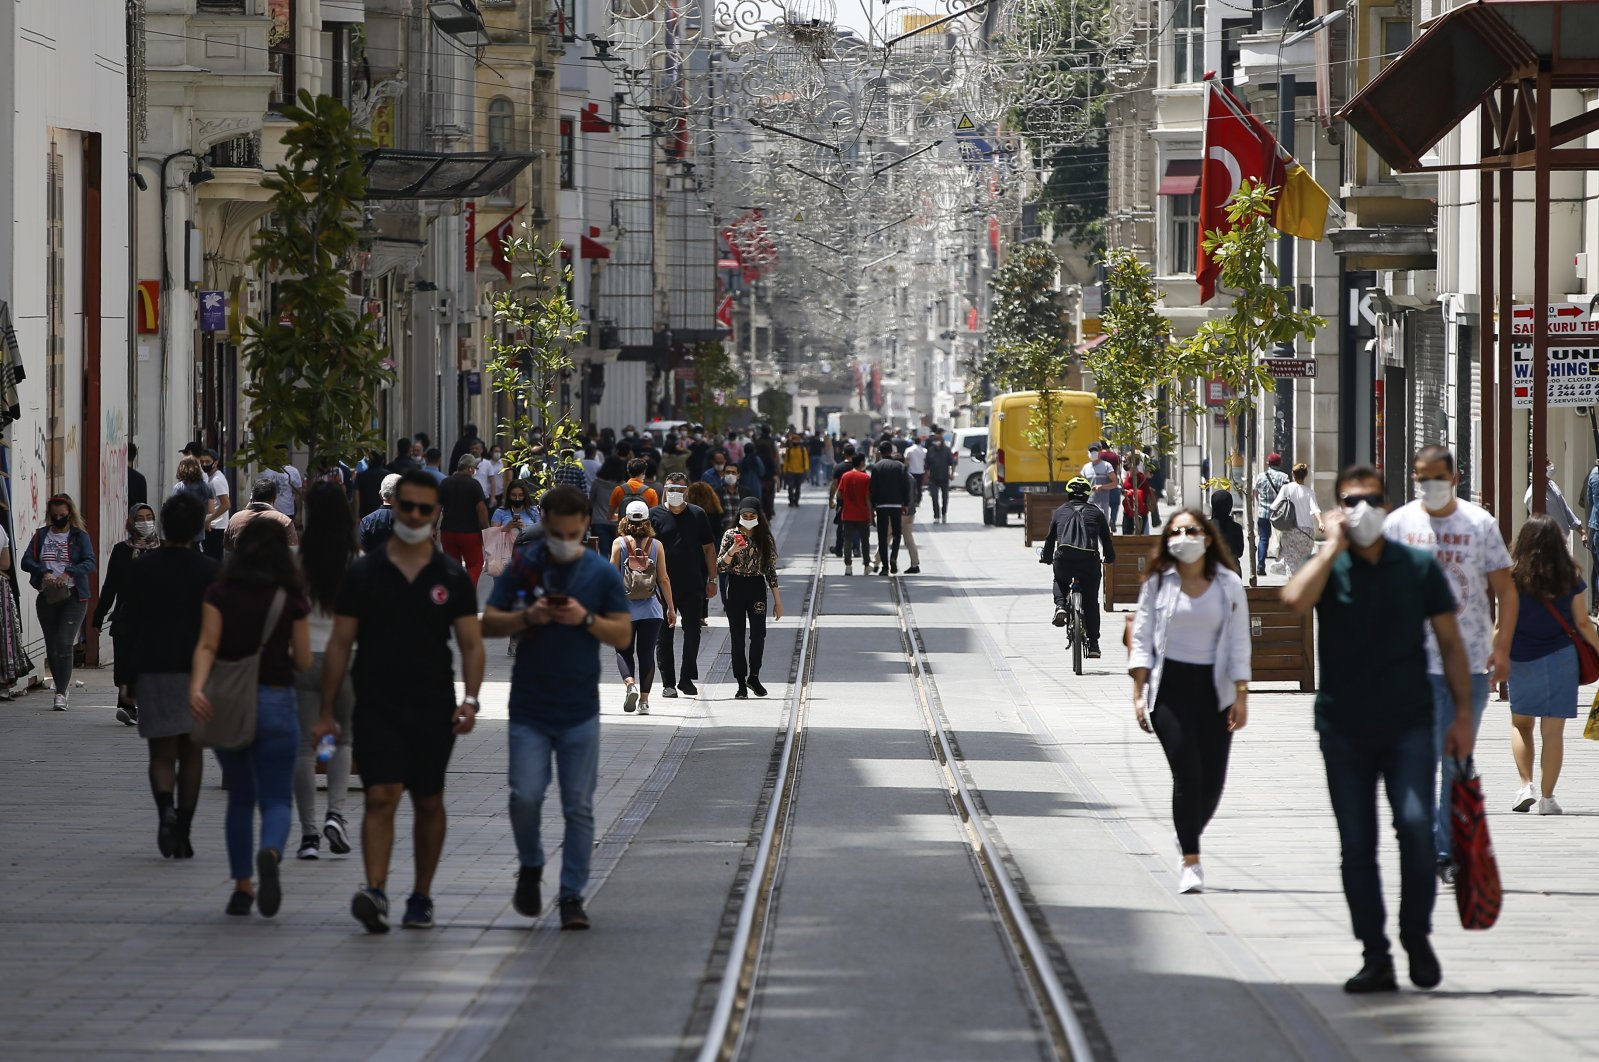 People walk on Istiklal Avenue, one of the main shopping streets in Istanbul, Turkey, during the coronavirus outbreak, May 15, 2020. (AP Photo)